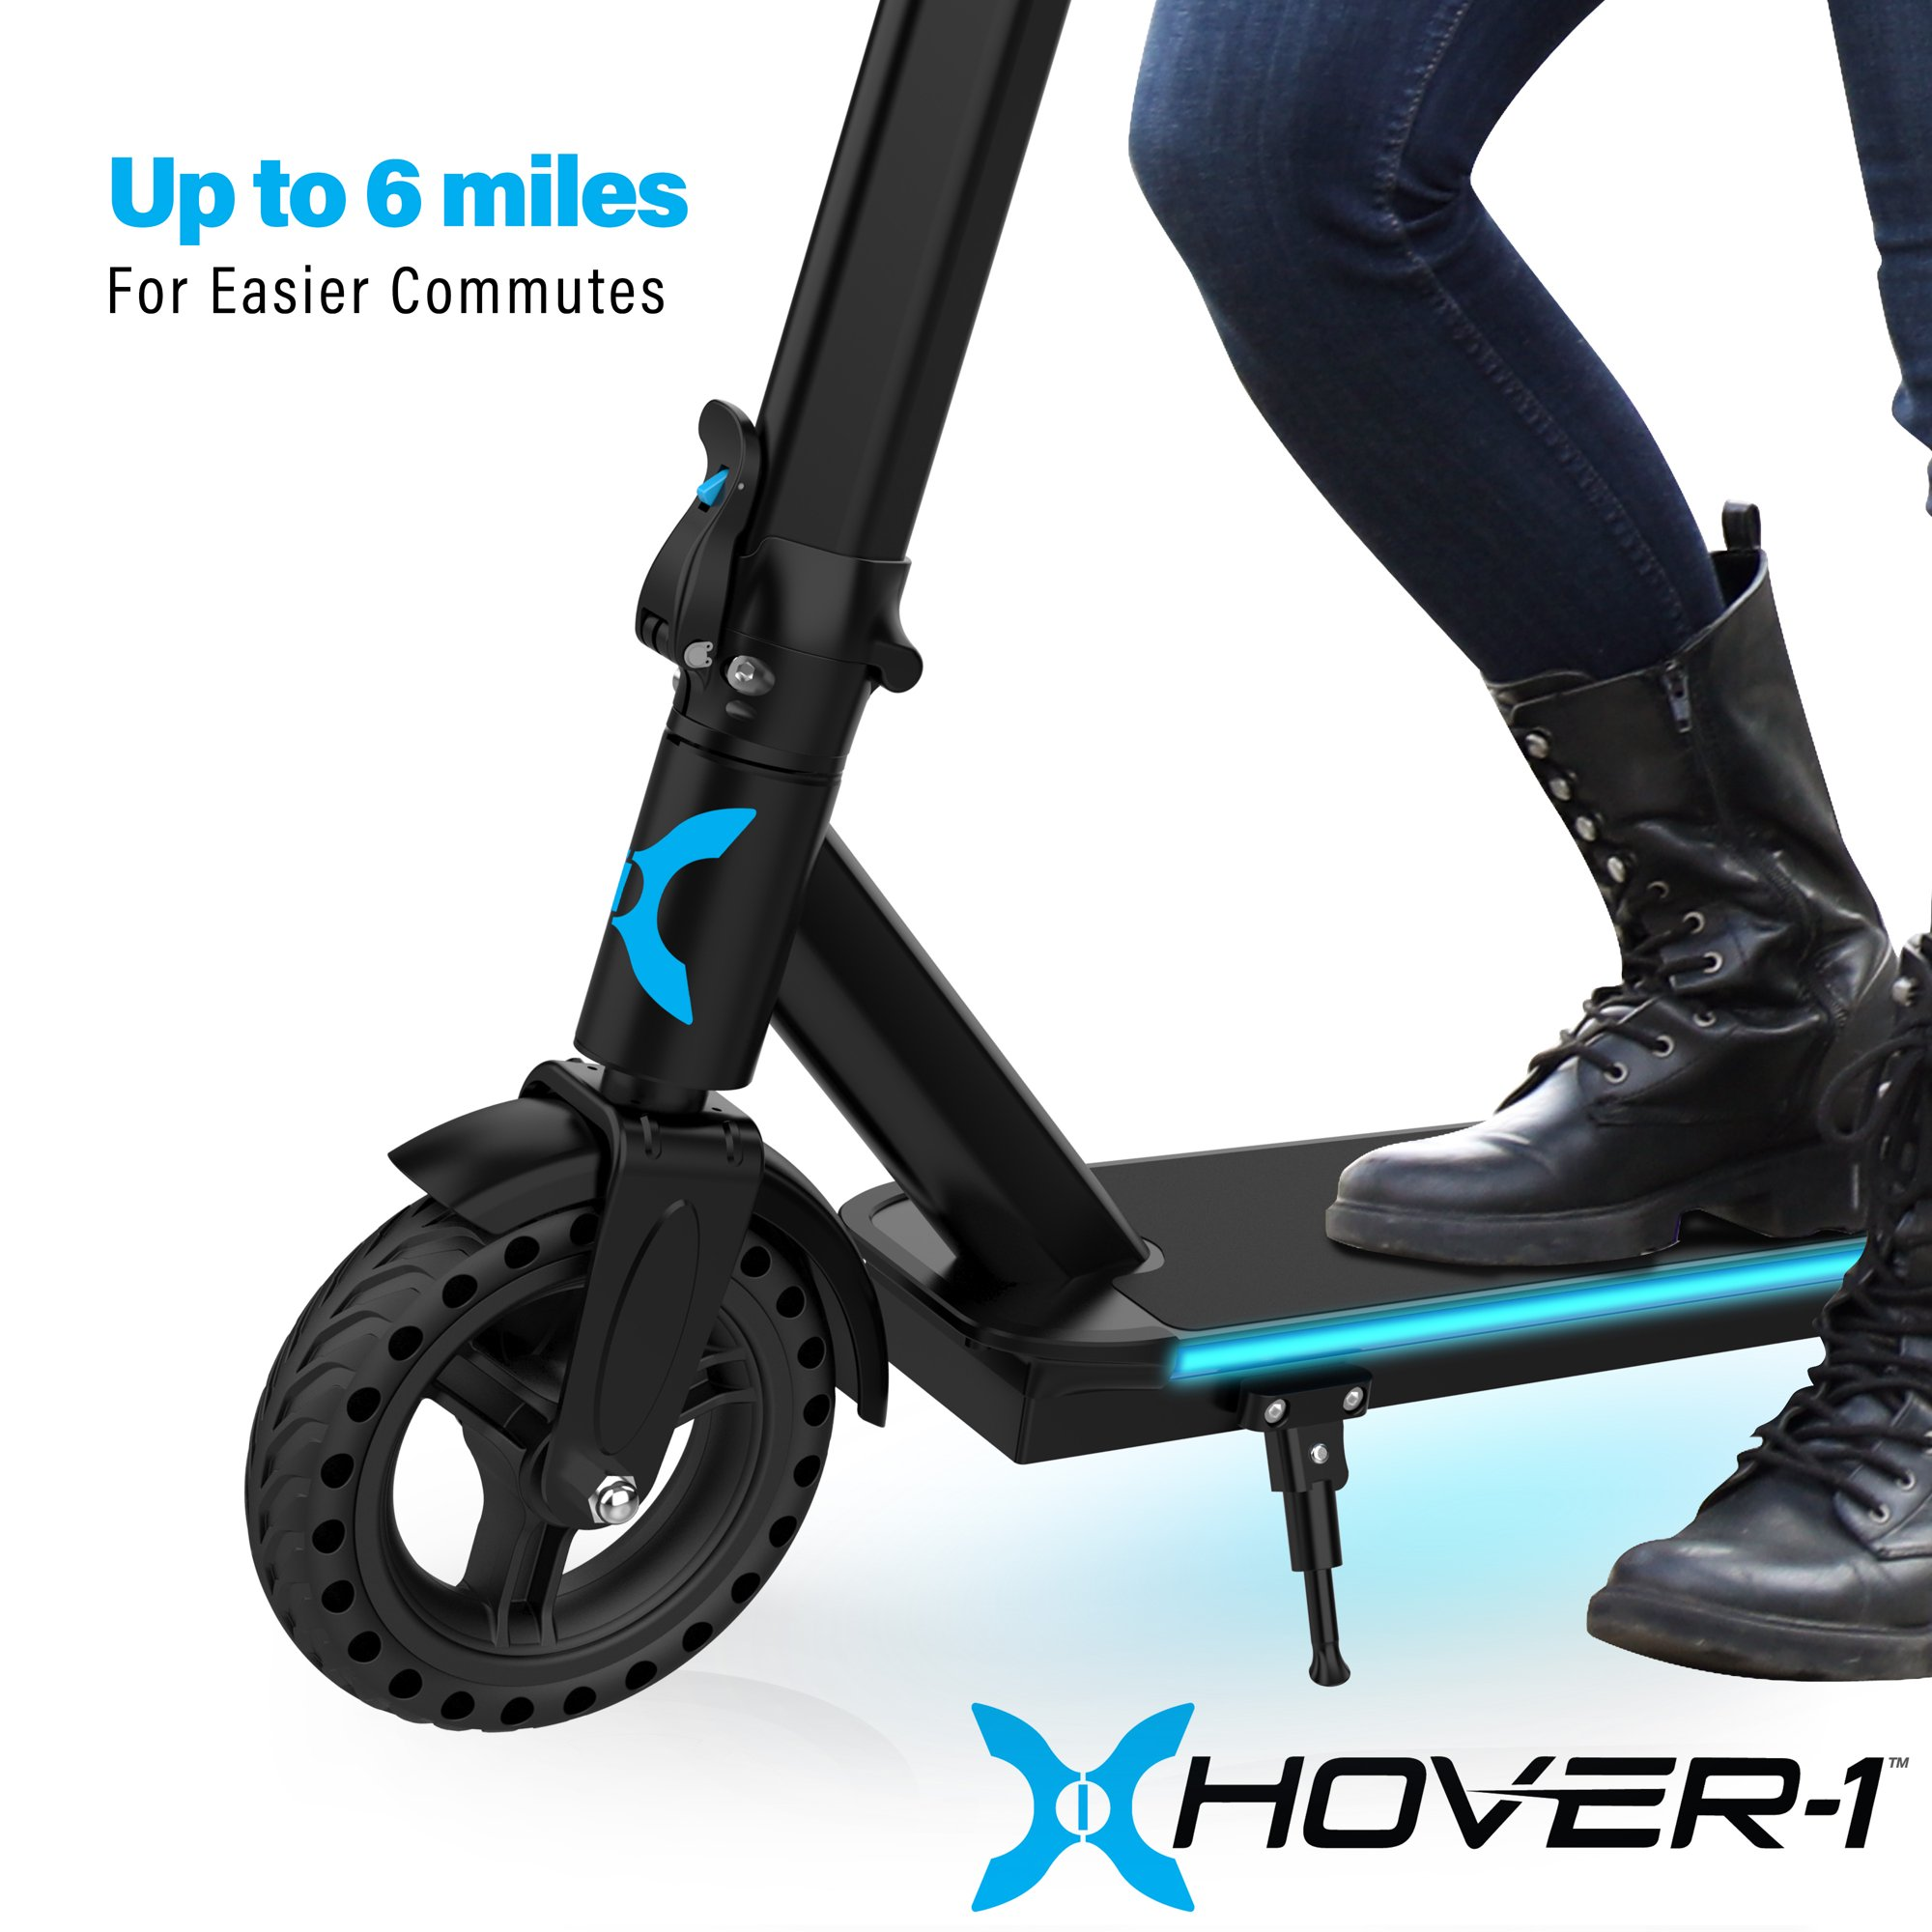 Hover-1 Edge Electric Scooter w/ LED Headlight, Built-in Bluetooth Speaker, 15 MPH Max Speed, 264 lbs Max Weight, 6 Miles Max Distance - Black